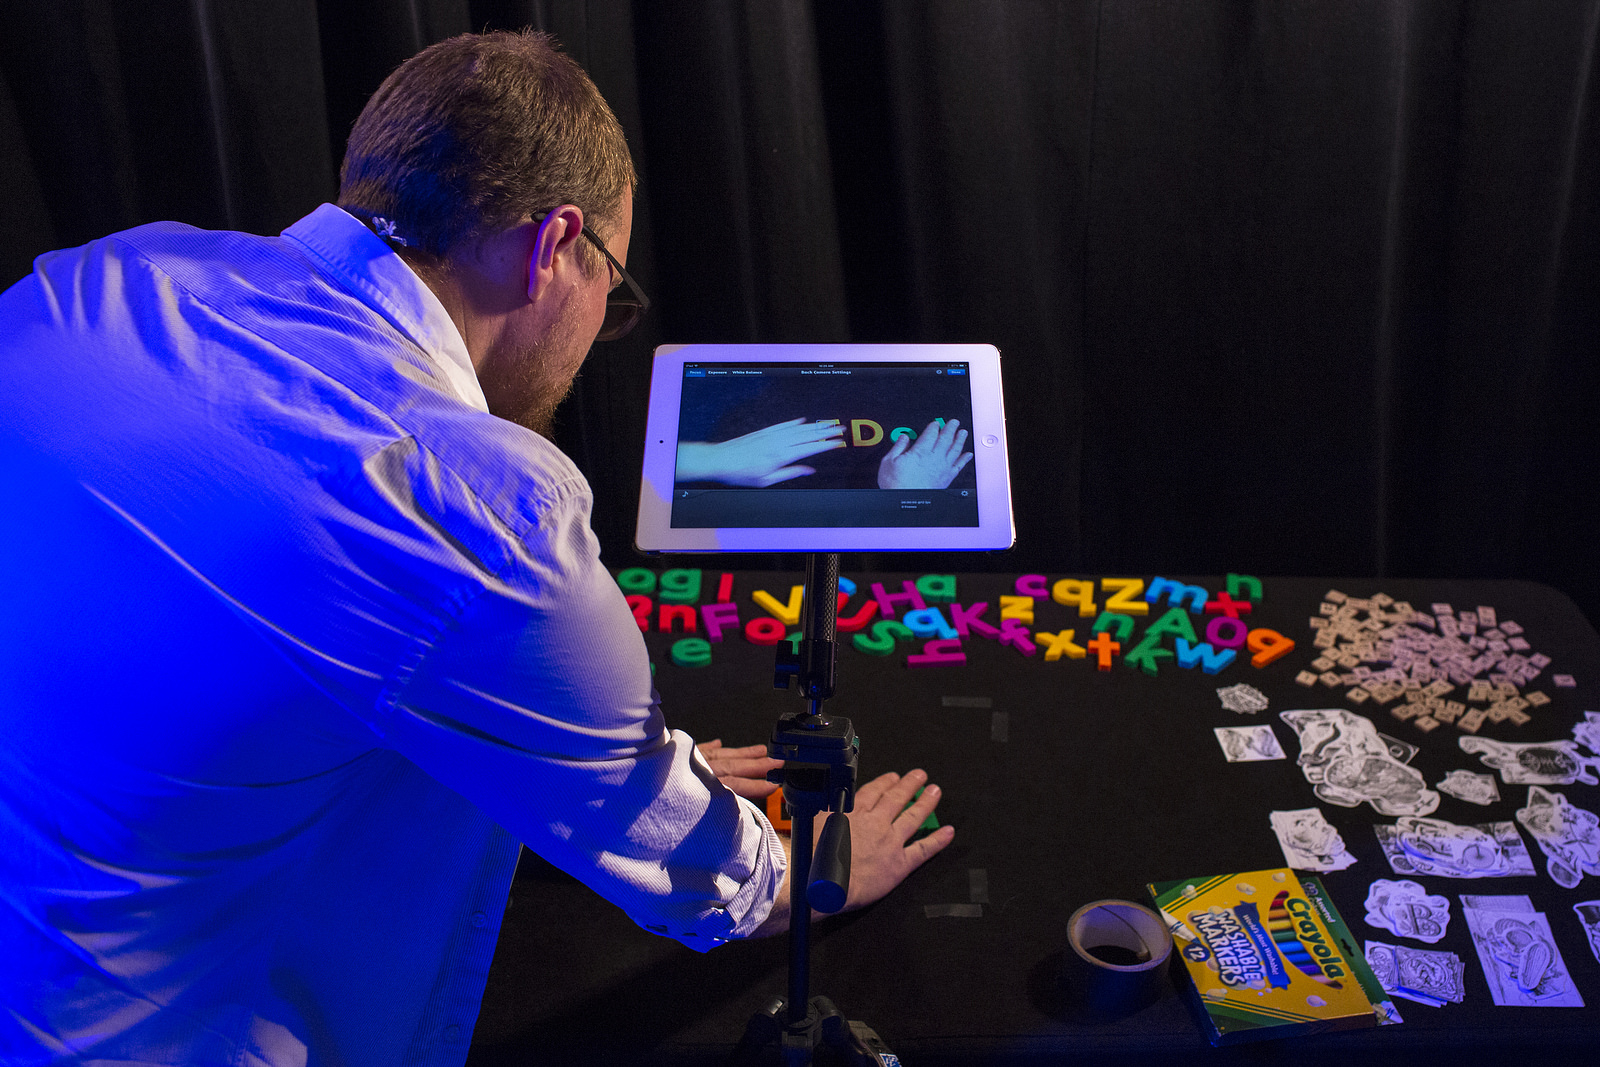 An animation station, courtesy of TED-Ed, in Whistler. Photo: Sarah Nickerson